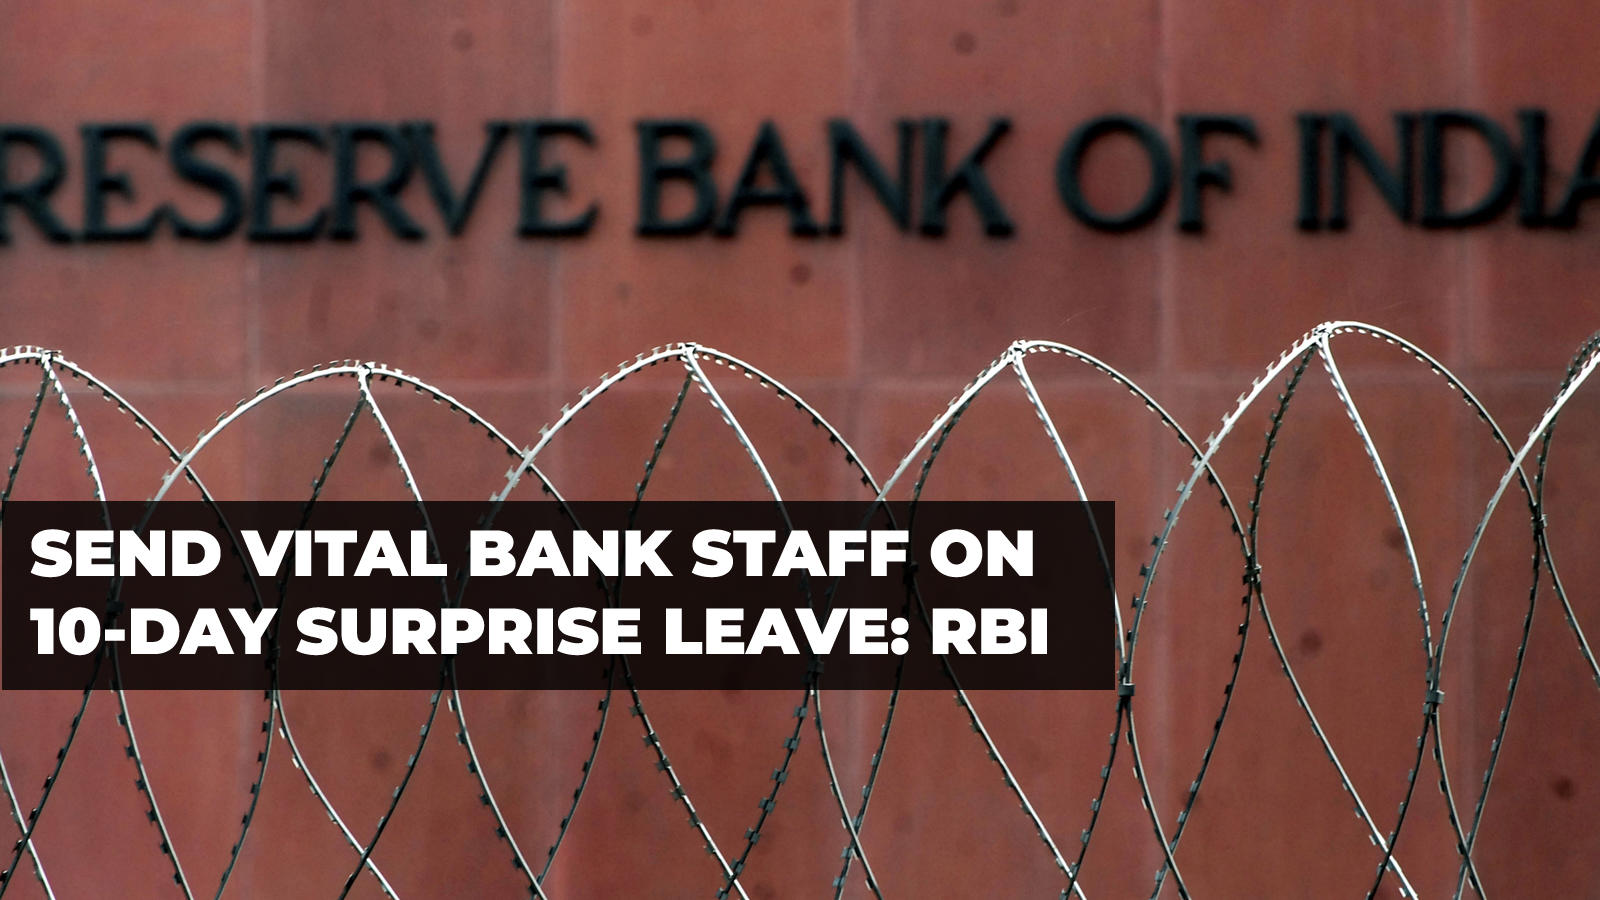 send-vital-bank-staff-on-10-day-surprise-leave-rbi